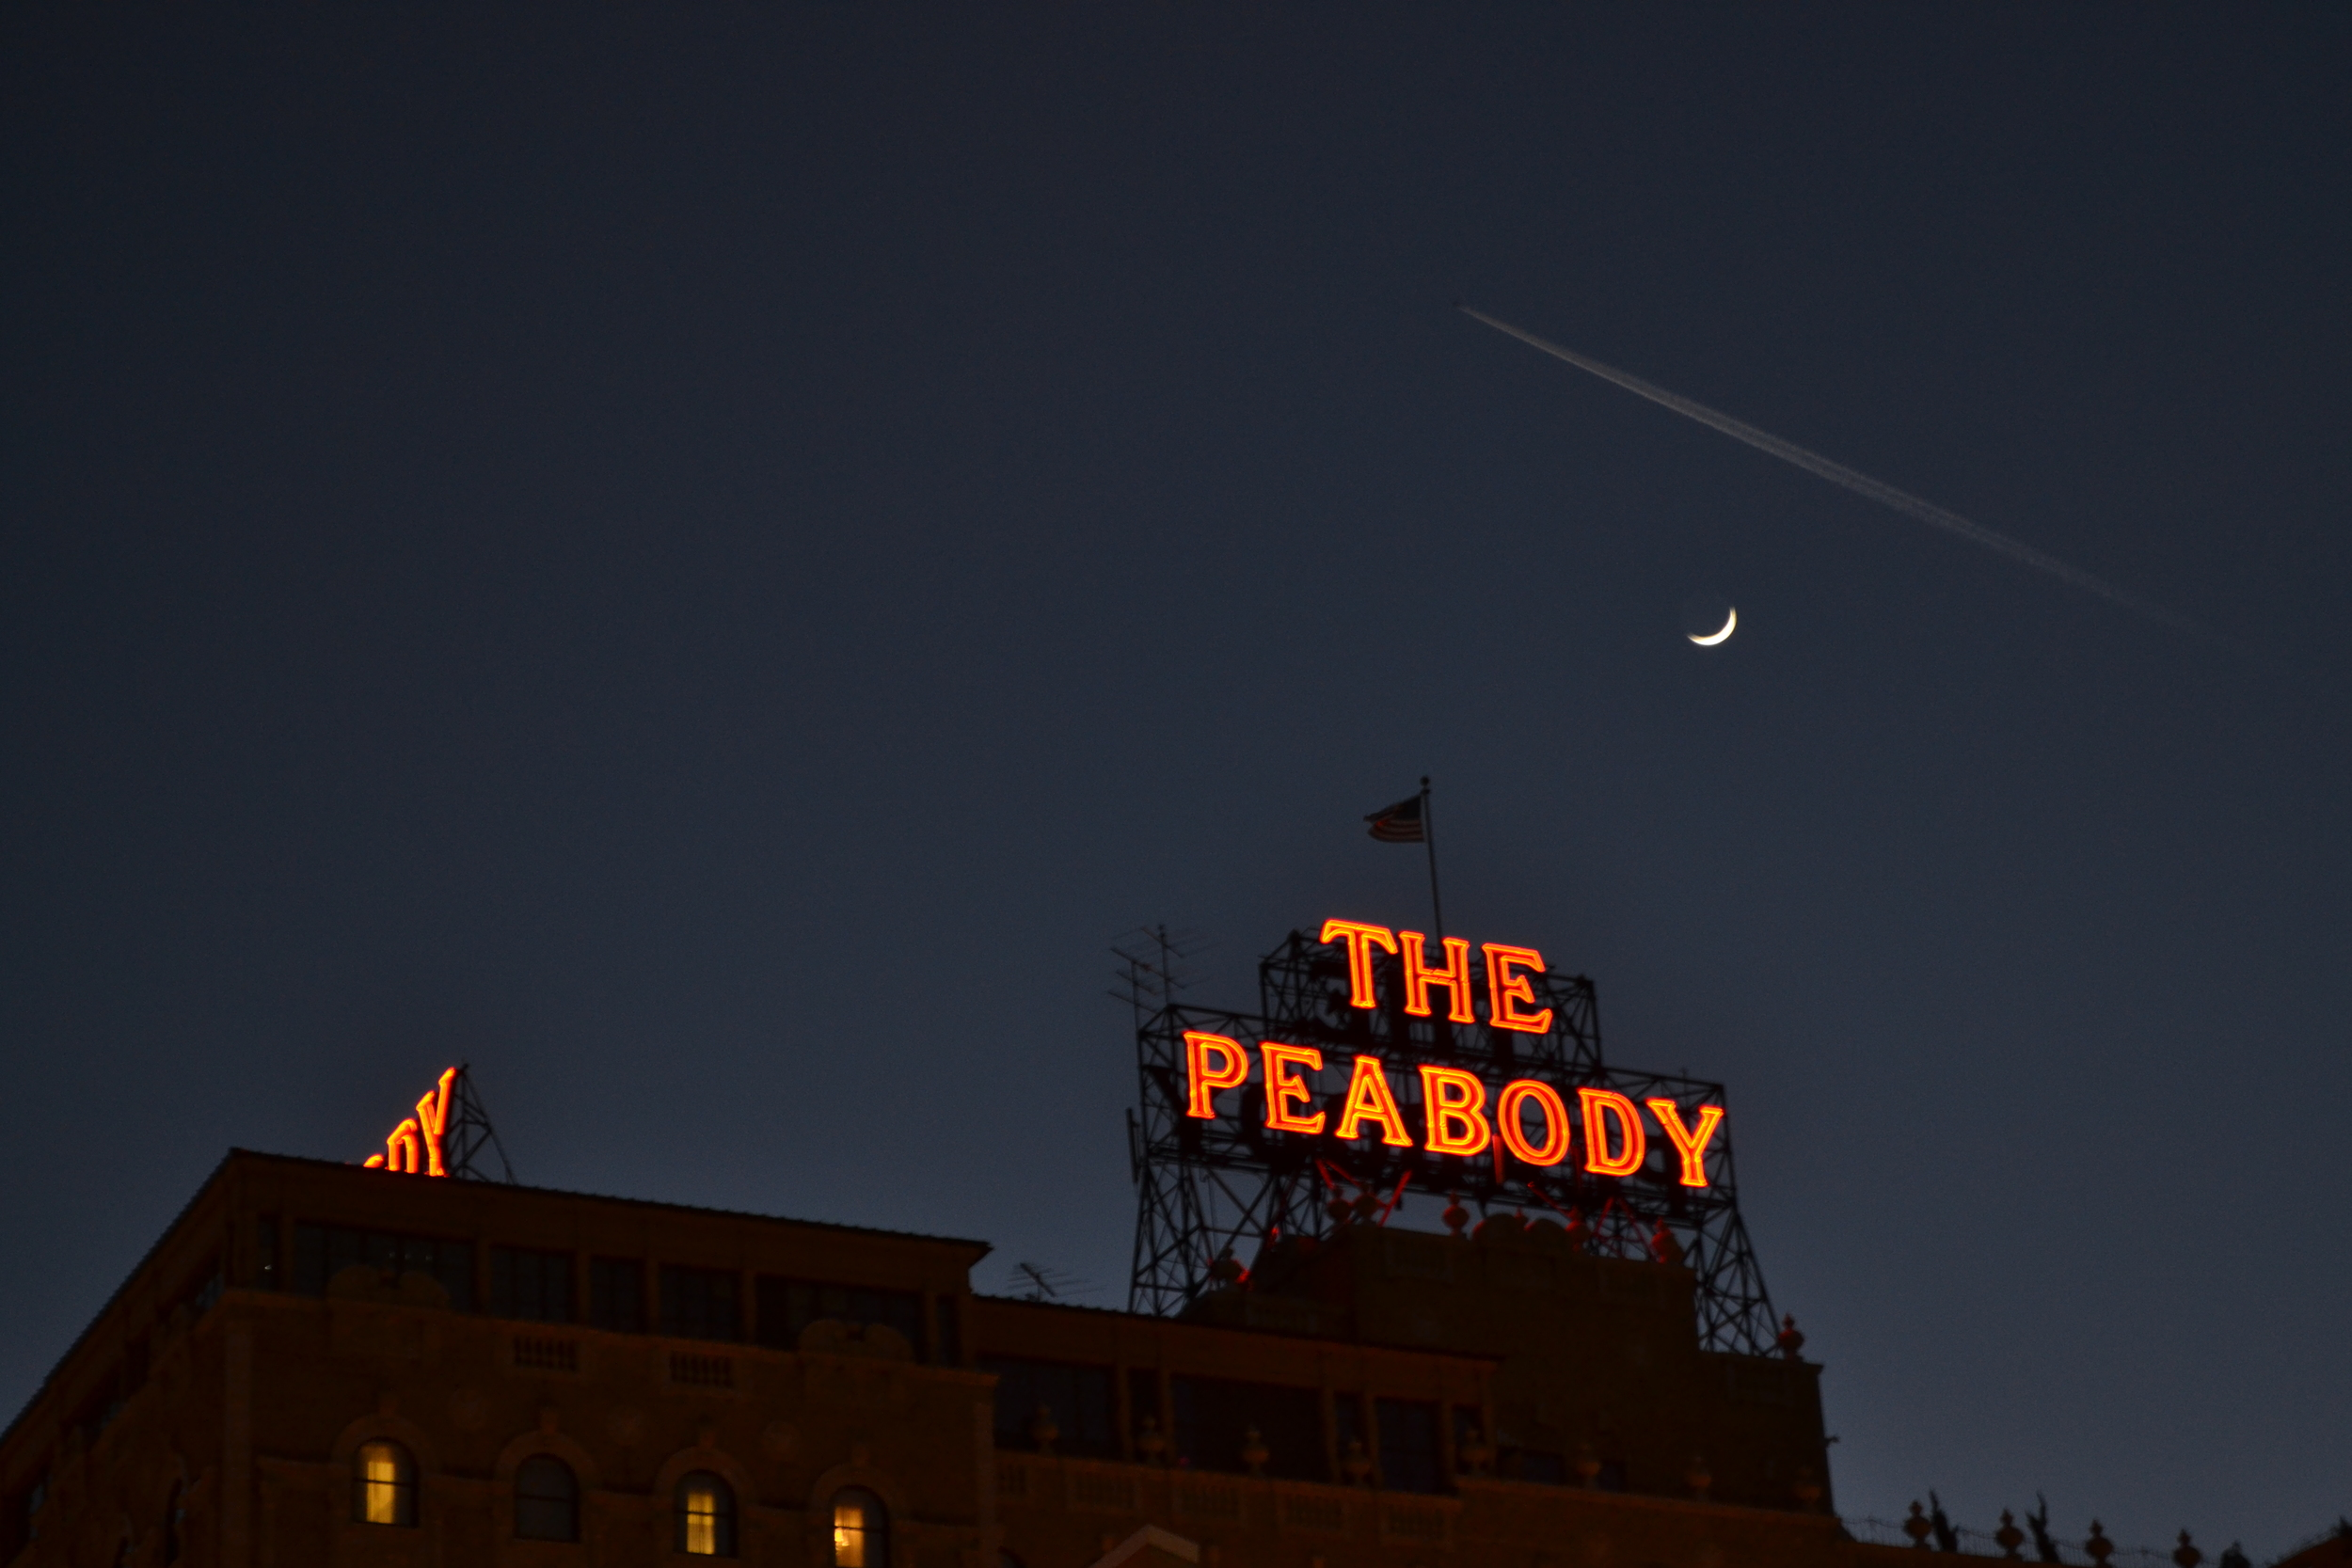 The grand Peabody Hotel in downtown Memphis, TN.